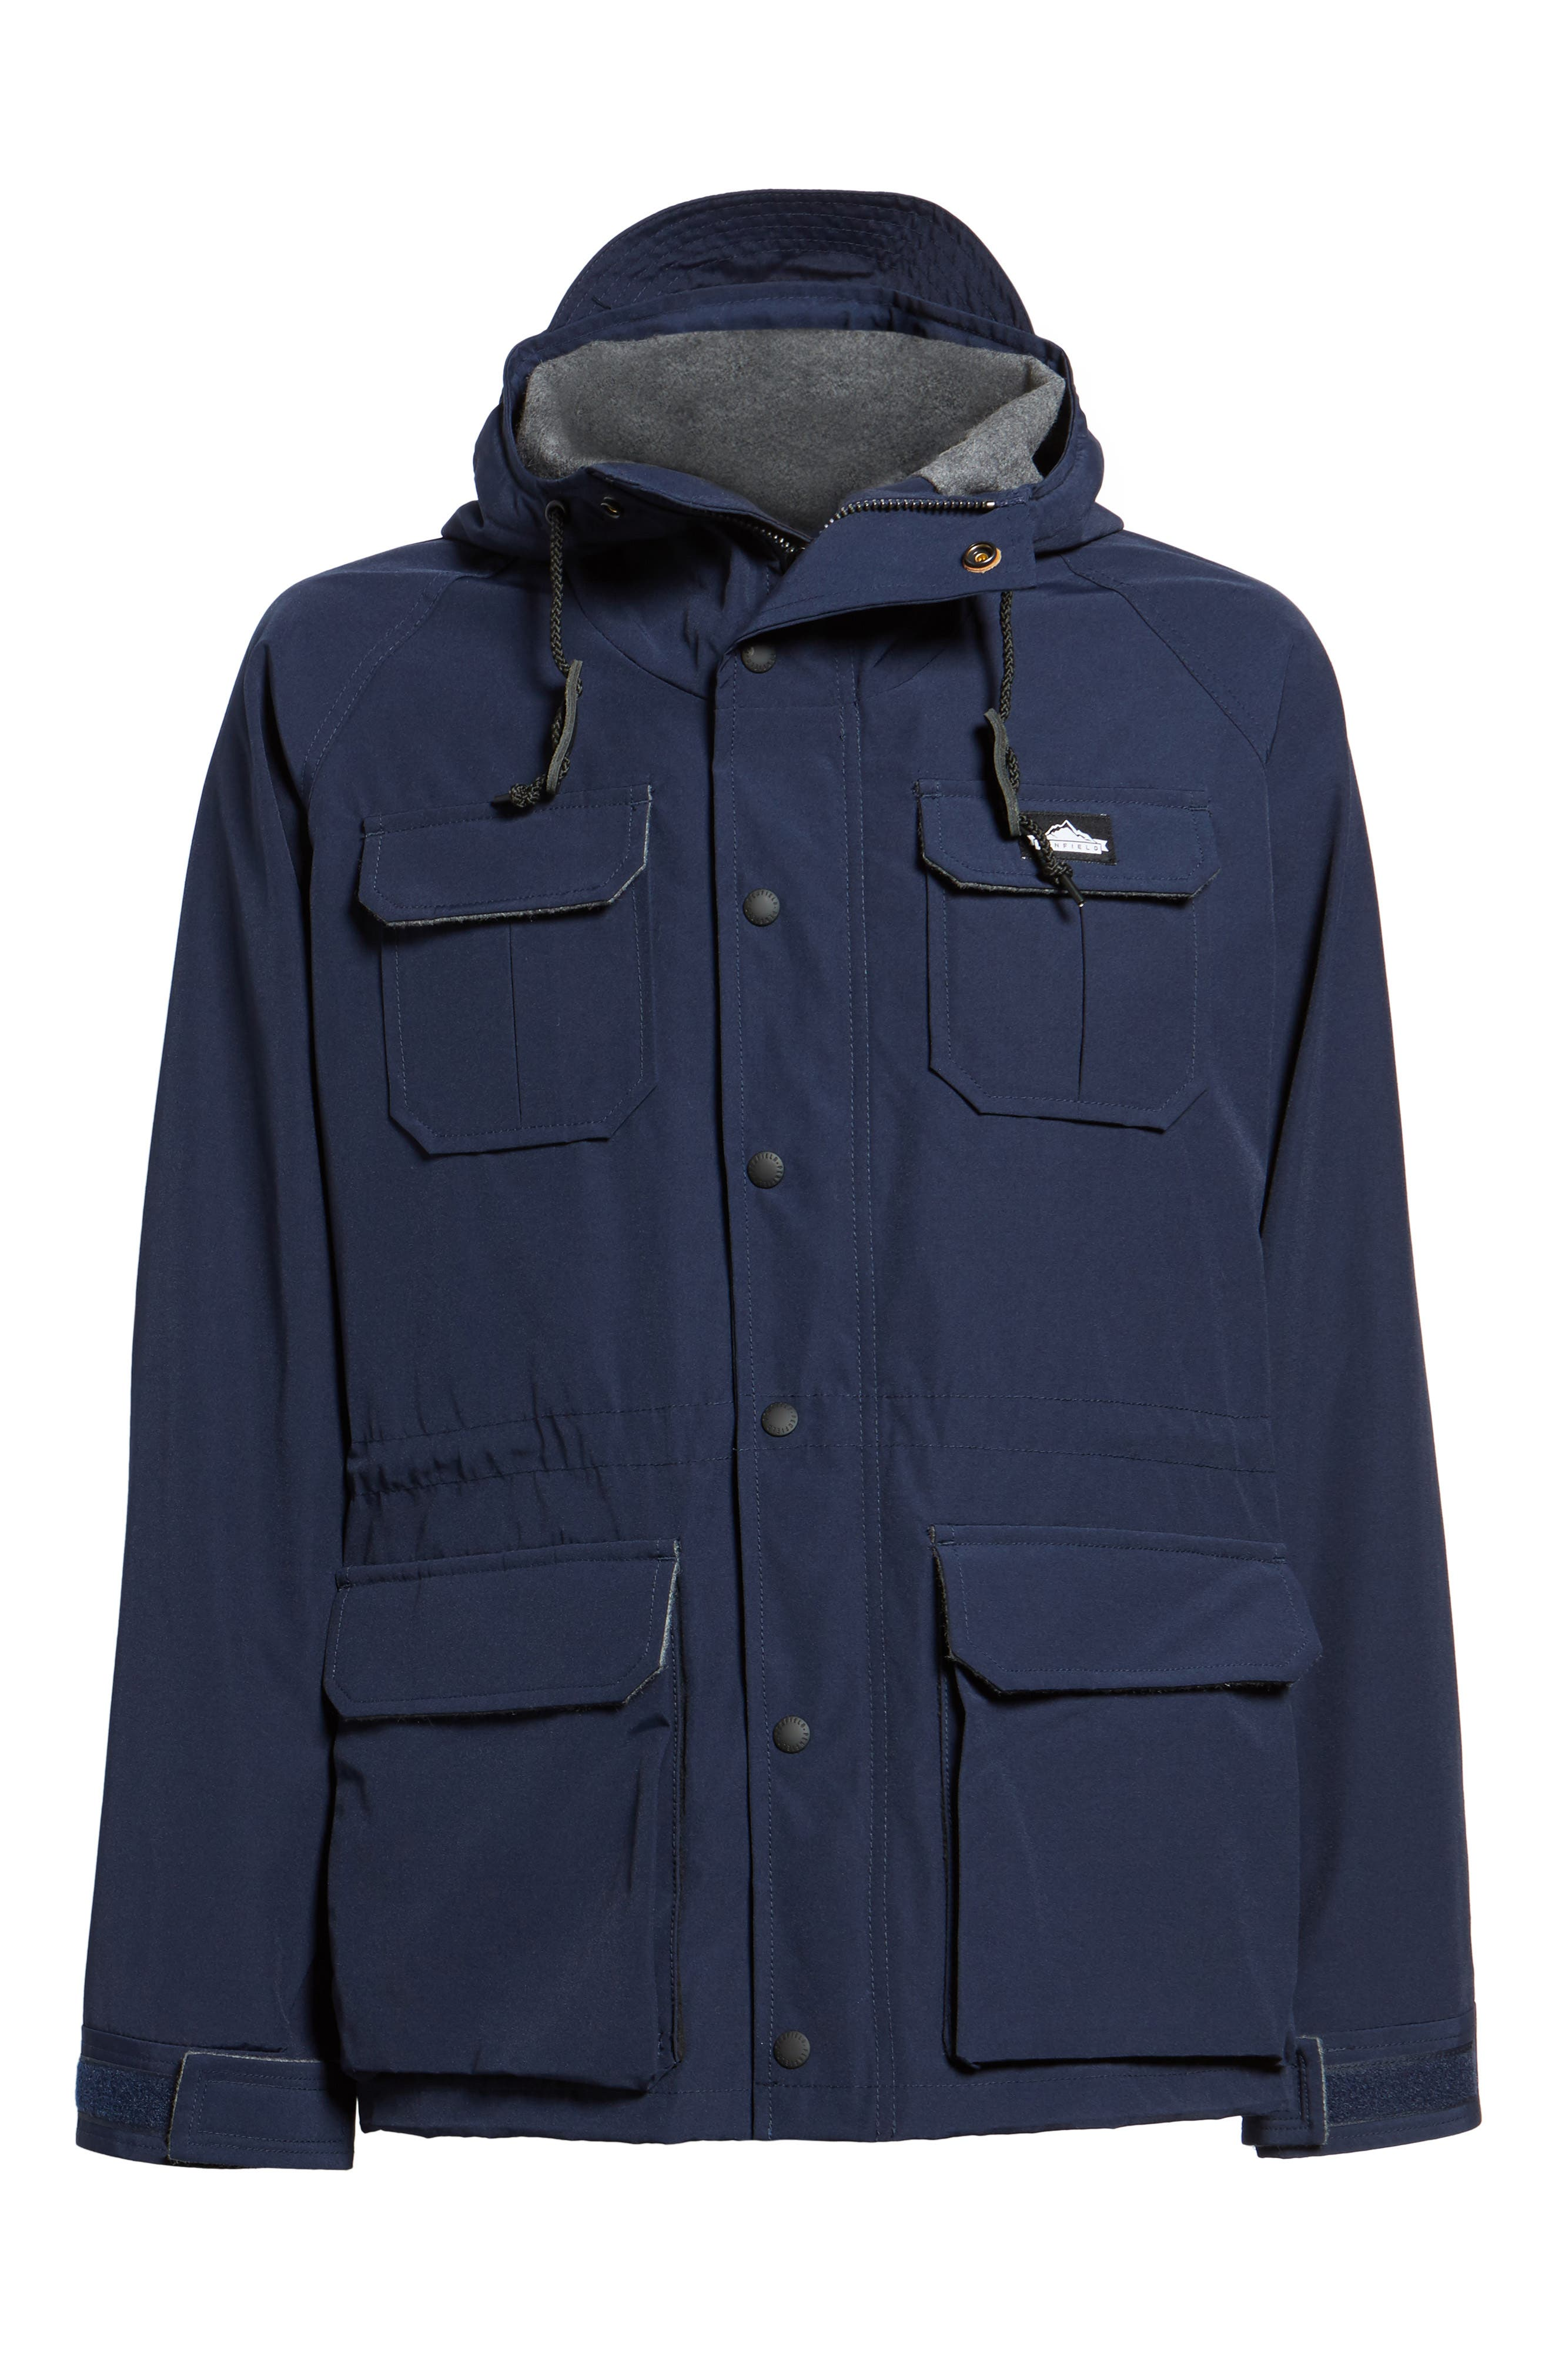 Kasson Parka,                             Alternate thumbnail 6, color,                             Navy